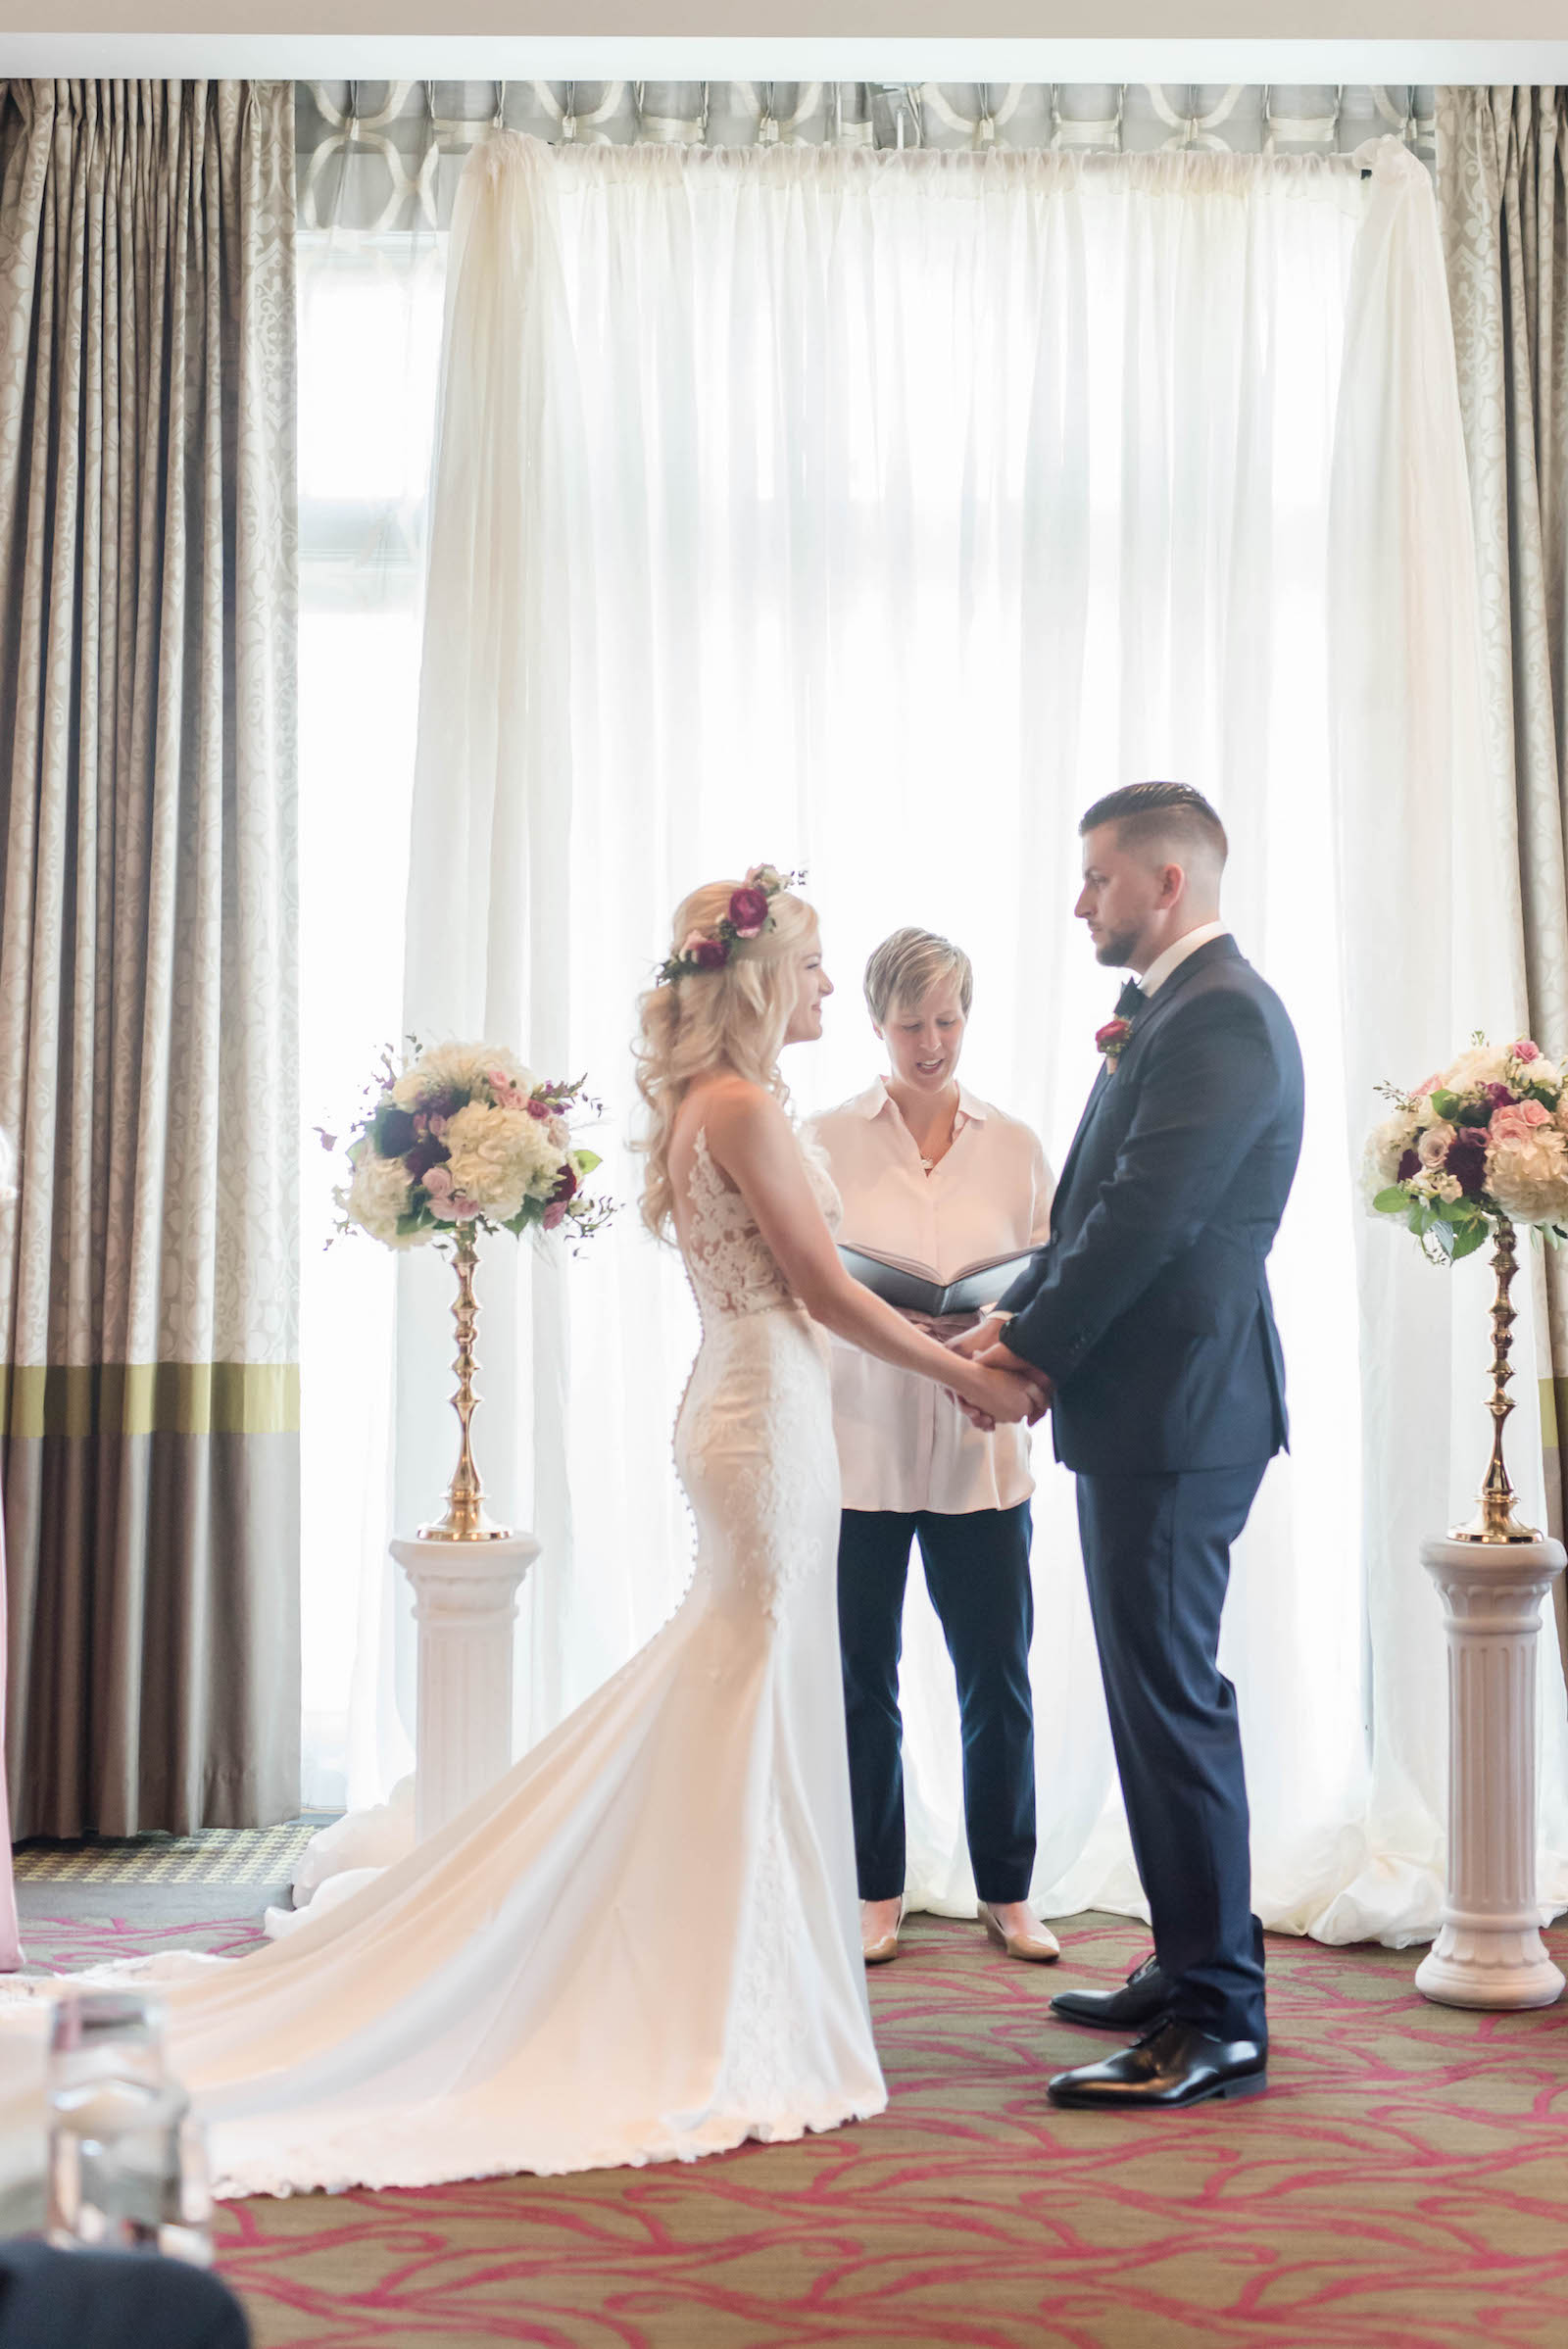 Bride and Groom Exchanging Vows   St. Pete Wedding Venue The Birchwood   Indoor Ballroom Wedding Ceremony with Floral Candlestick and Pipe and Drape Backdrop   Stella York Lace Sheath Spaghetti Strap Empire Waist Wedding Dress Bridal Gown   Groom Classic Black Suit Tux